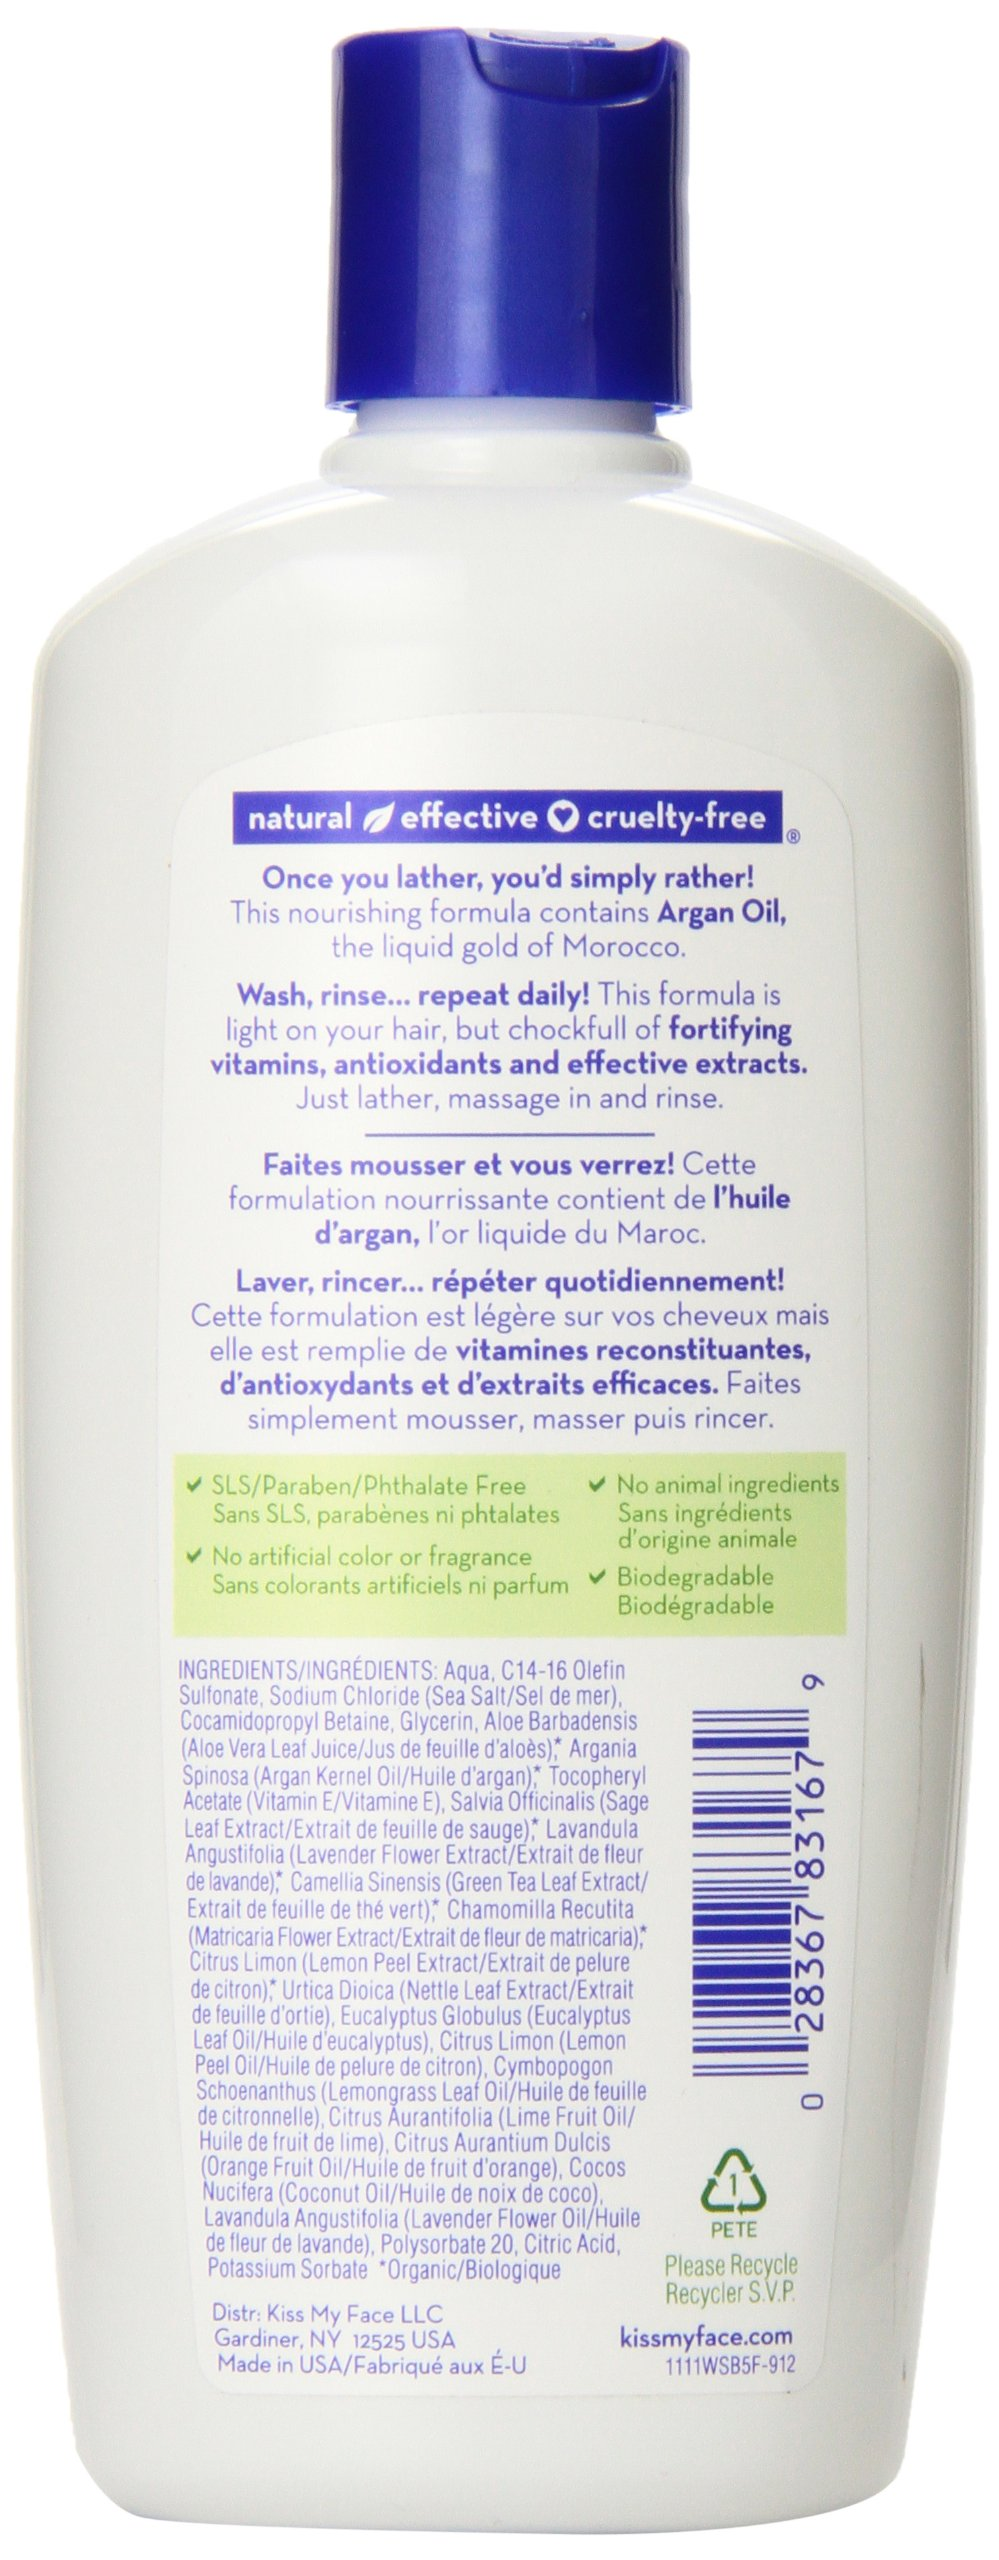 Kiss My Face Whenever Shampoo, Shampoo with Green Tea & Lime, 11 Ounce (Pack of 3) by Kiss My Face (Image #4)